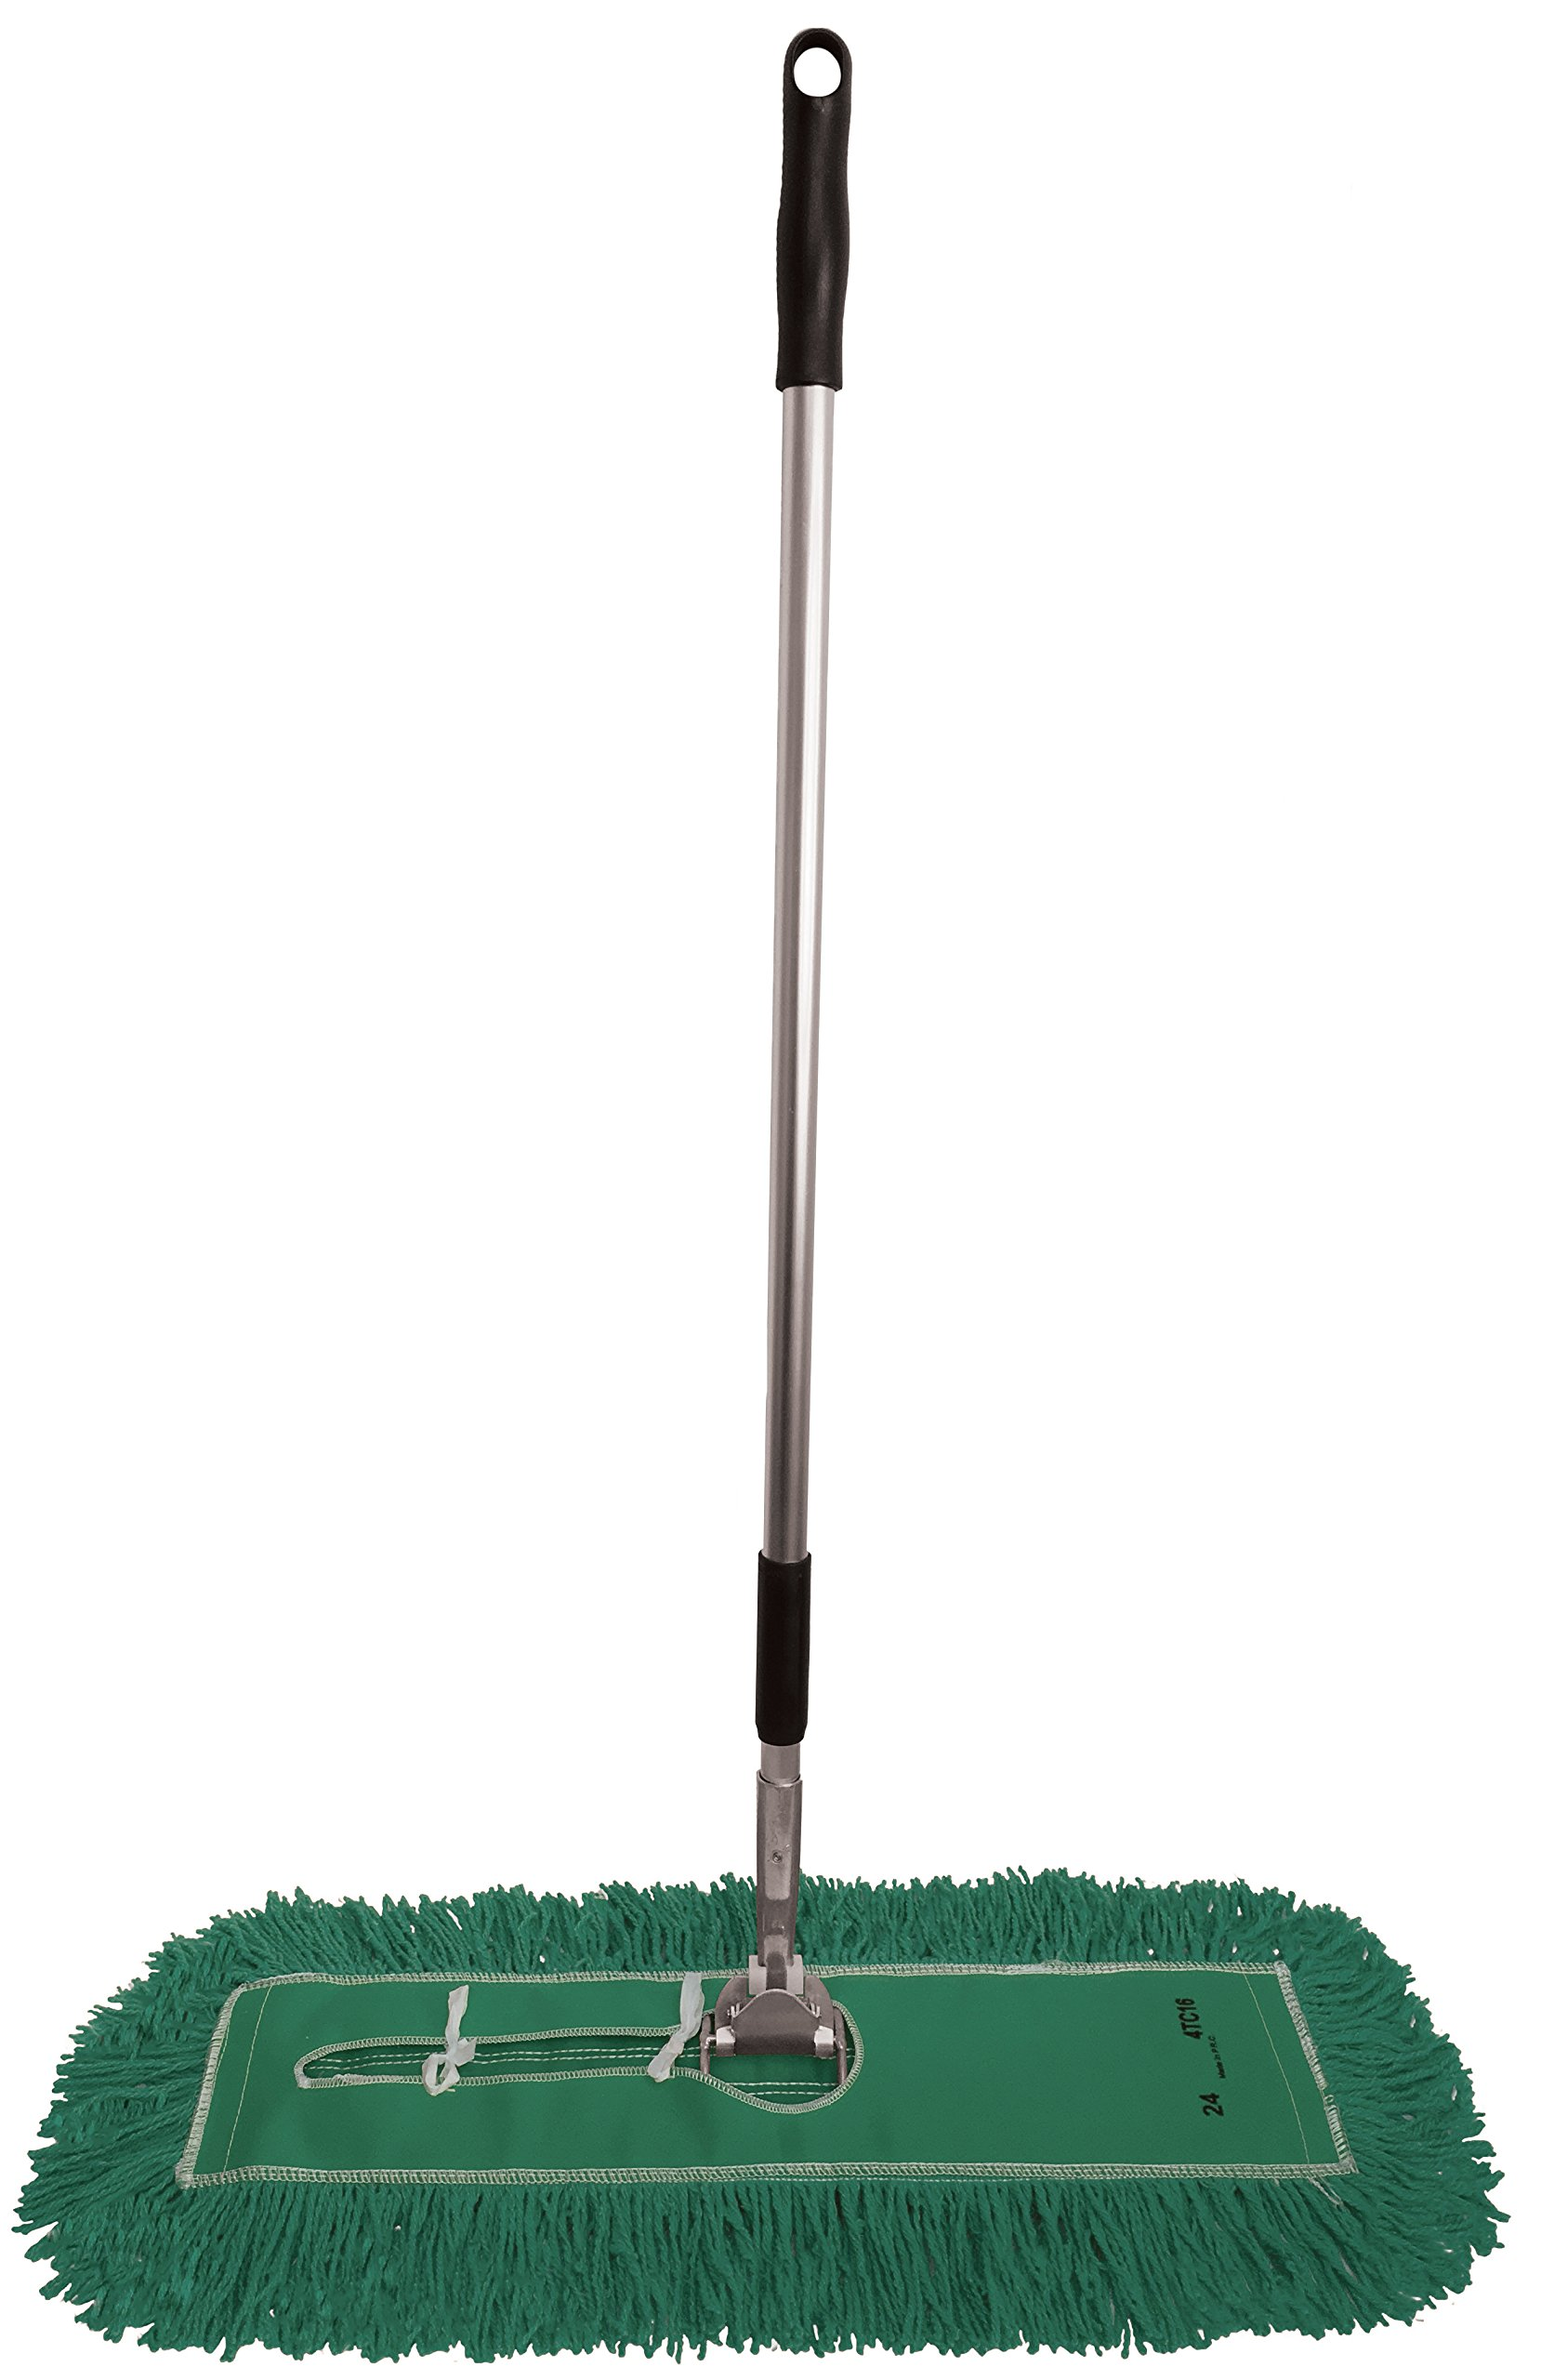 Dust Mop Kit 36'': (1) 36'' Green Industrial Closed-Loop Dust Mop, (1) 36'' Wire Dust Mop Frame & (1) Ergonomic Dust Mop Handle